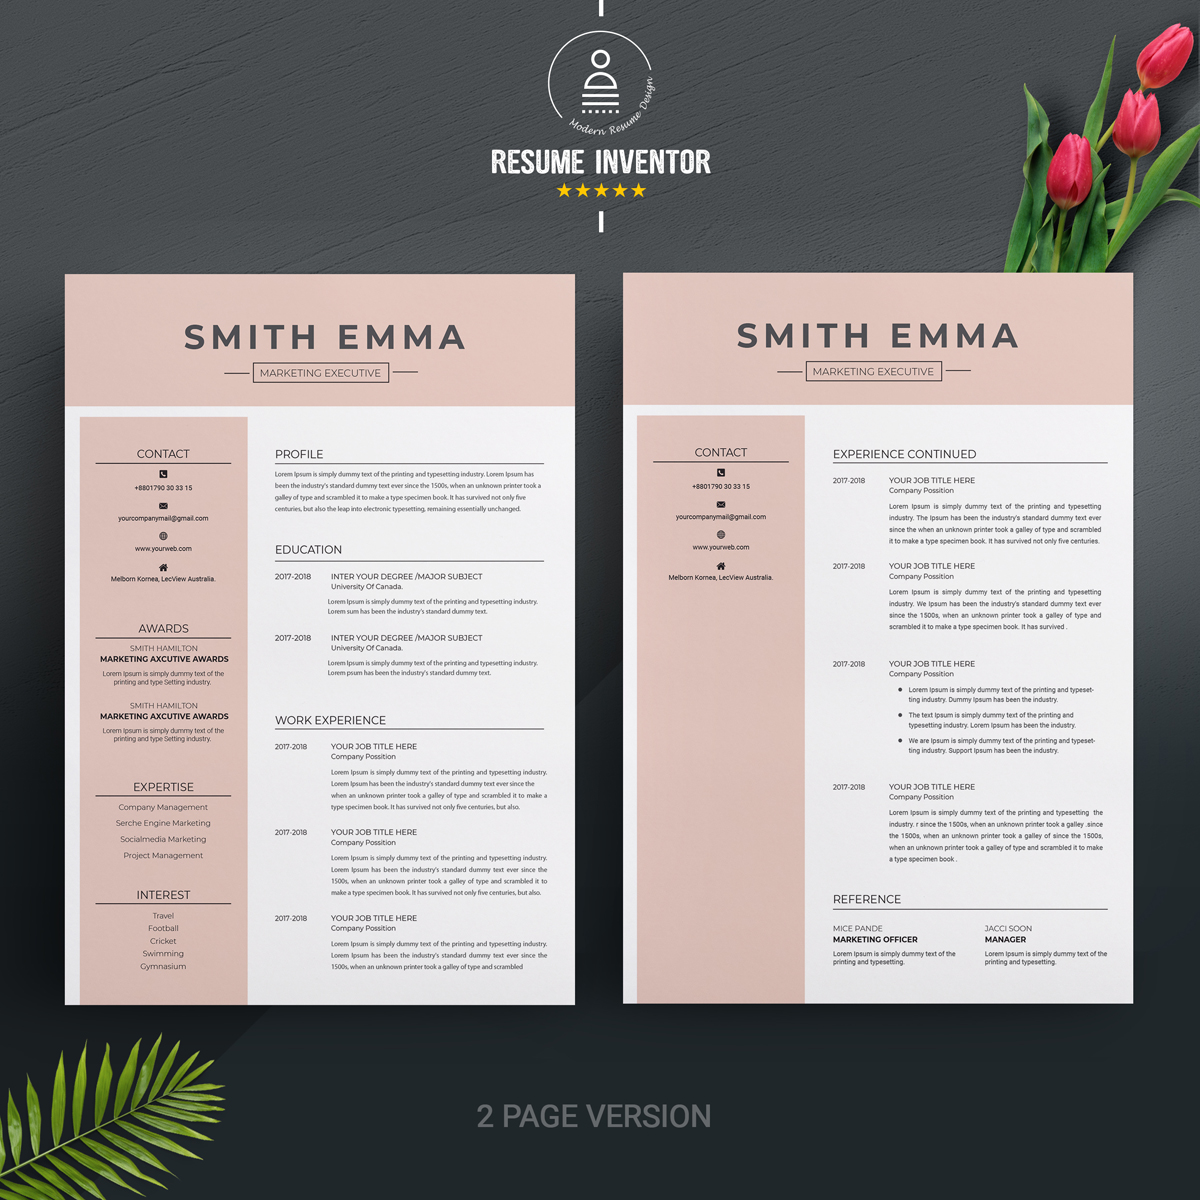 smith emma resume template  71441